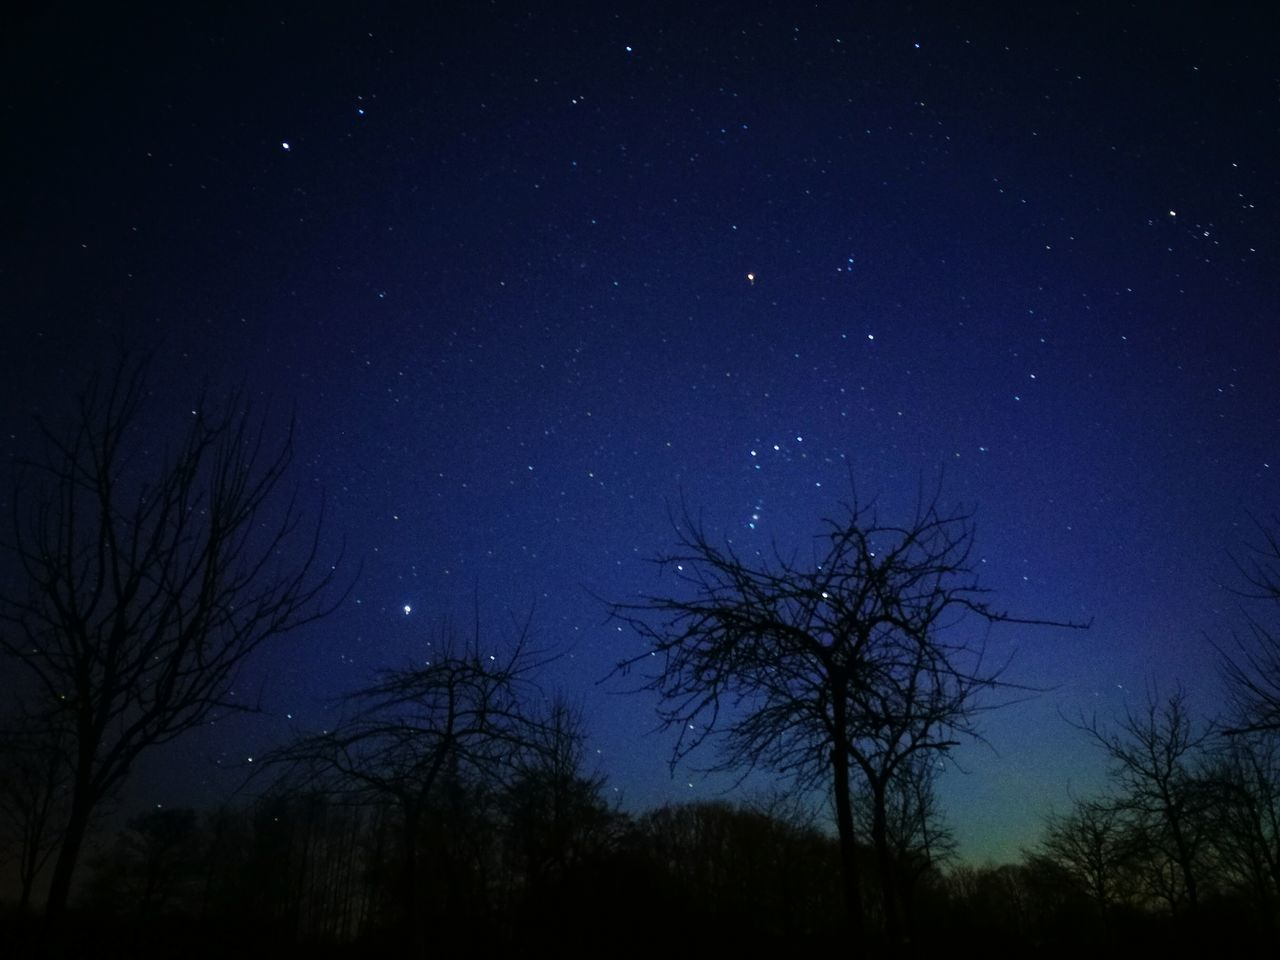 Star - Space Tree Astronomy Sky Night Space And Astronomy Space Beauty In Nature Nature Star Field Galaxy Constellation Dark Scenics Silhouette No People Outdoors Tranquil Scene Low Angle View HuaweiP9 EyeEm